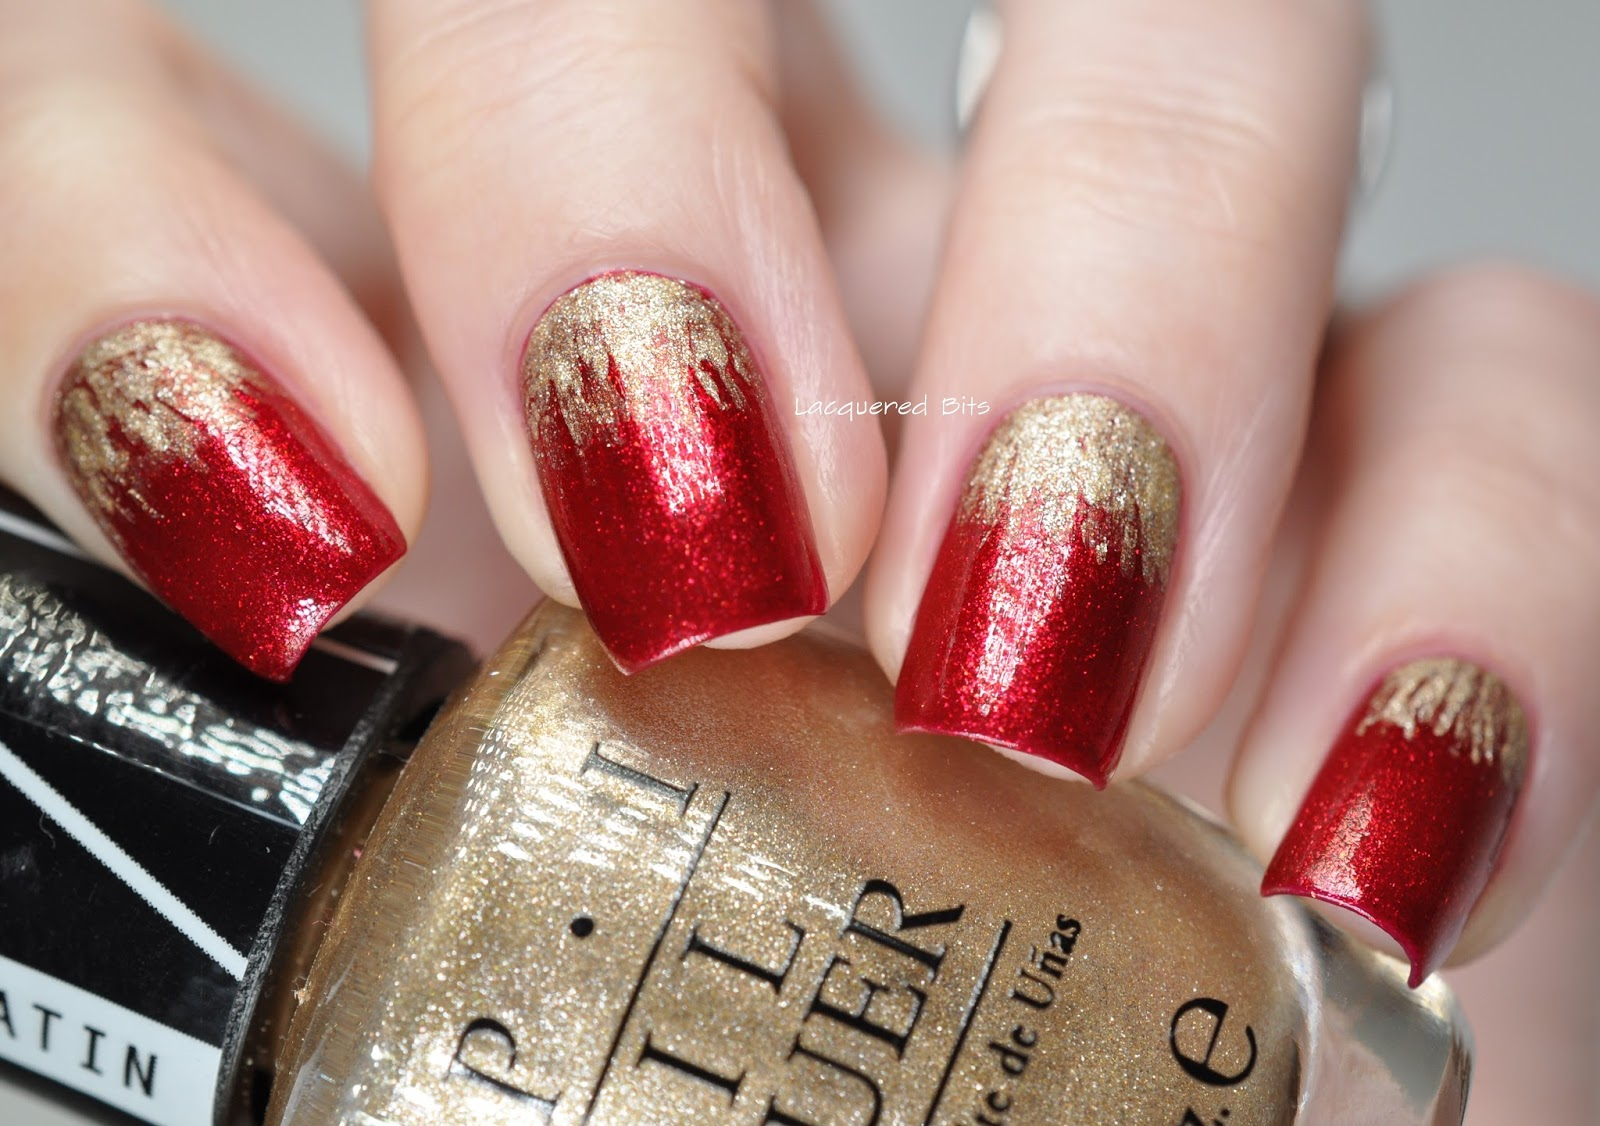 Red & Gold Christmas Nails - Lacquered Bits